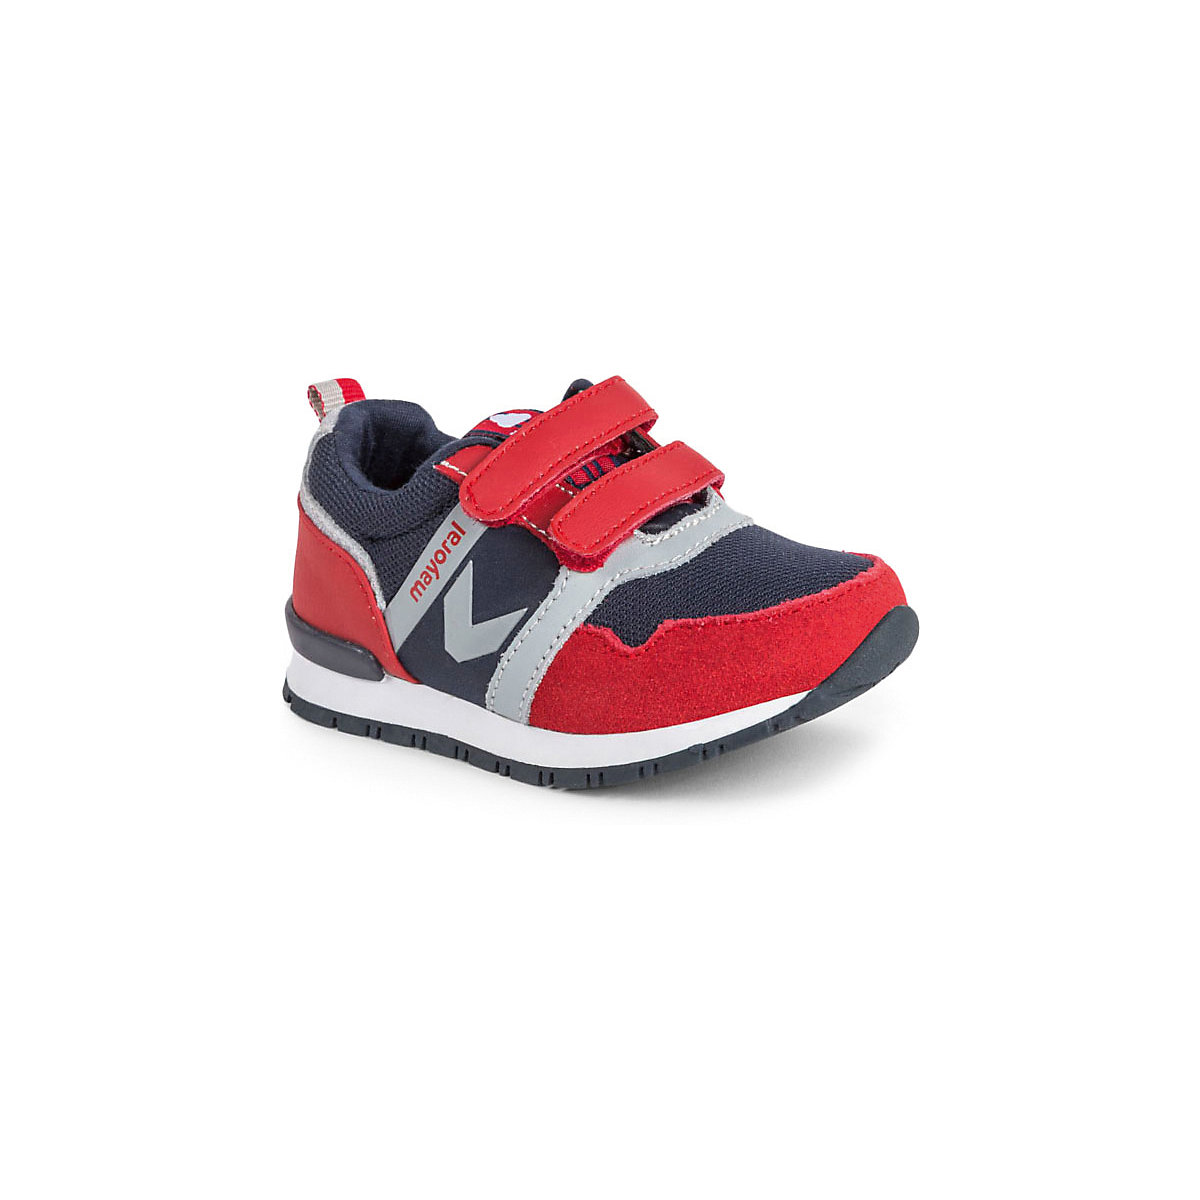 Фото - MAYORAL Kids' Sneakers 10642700 children's sports  running shoes boys  Spring Autumn 2017 men s autumn running sports suit